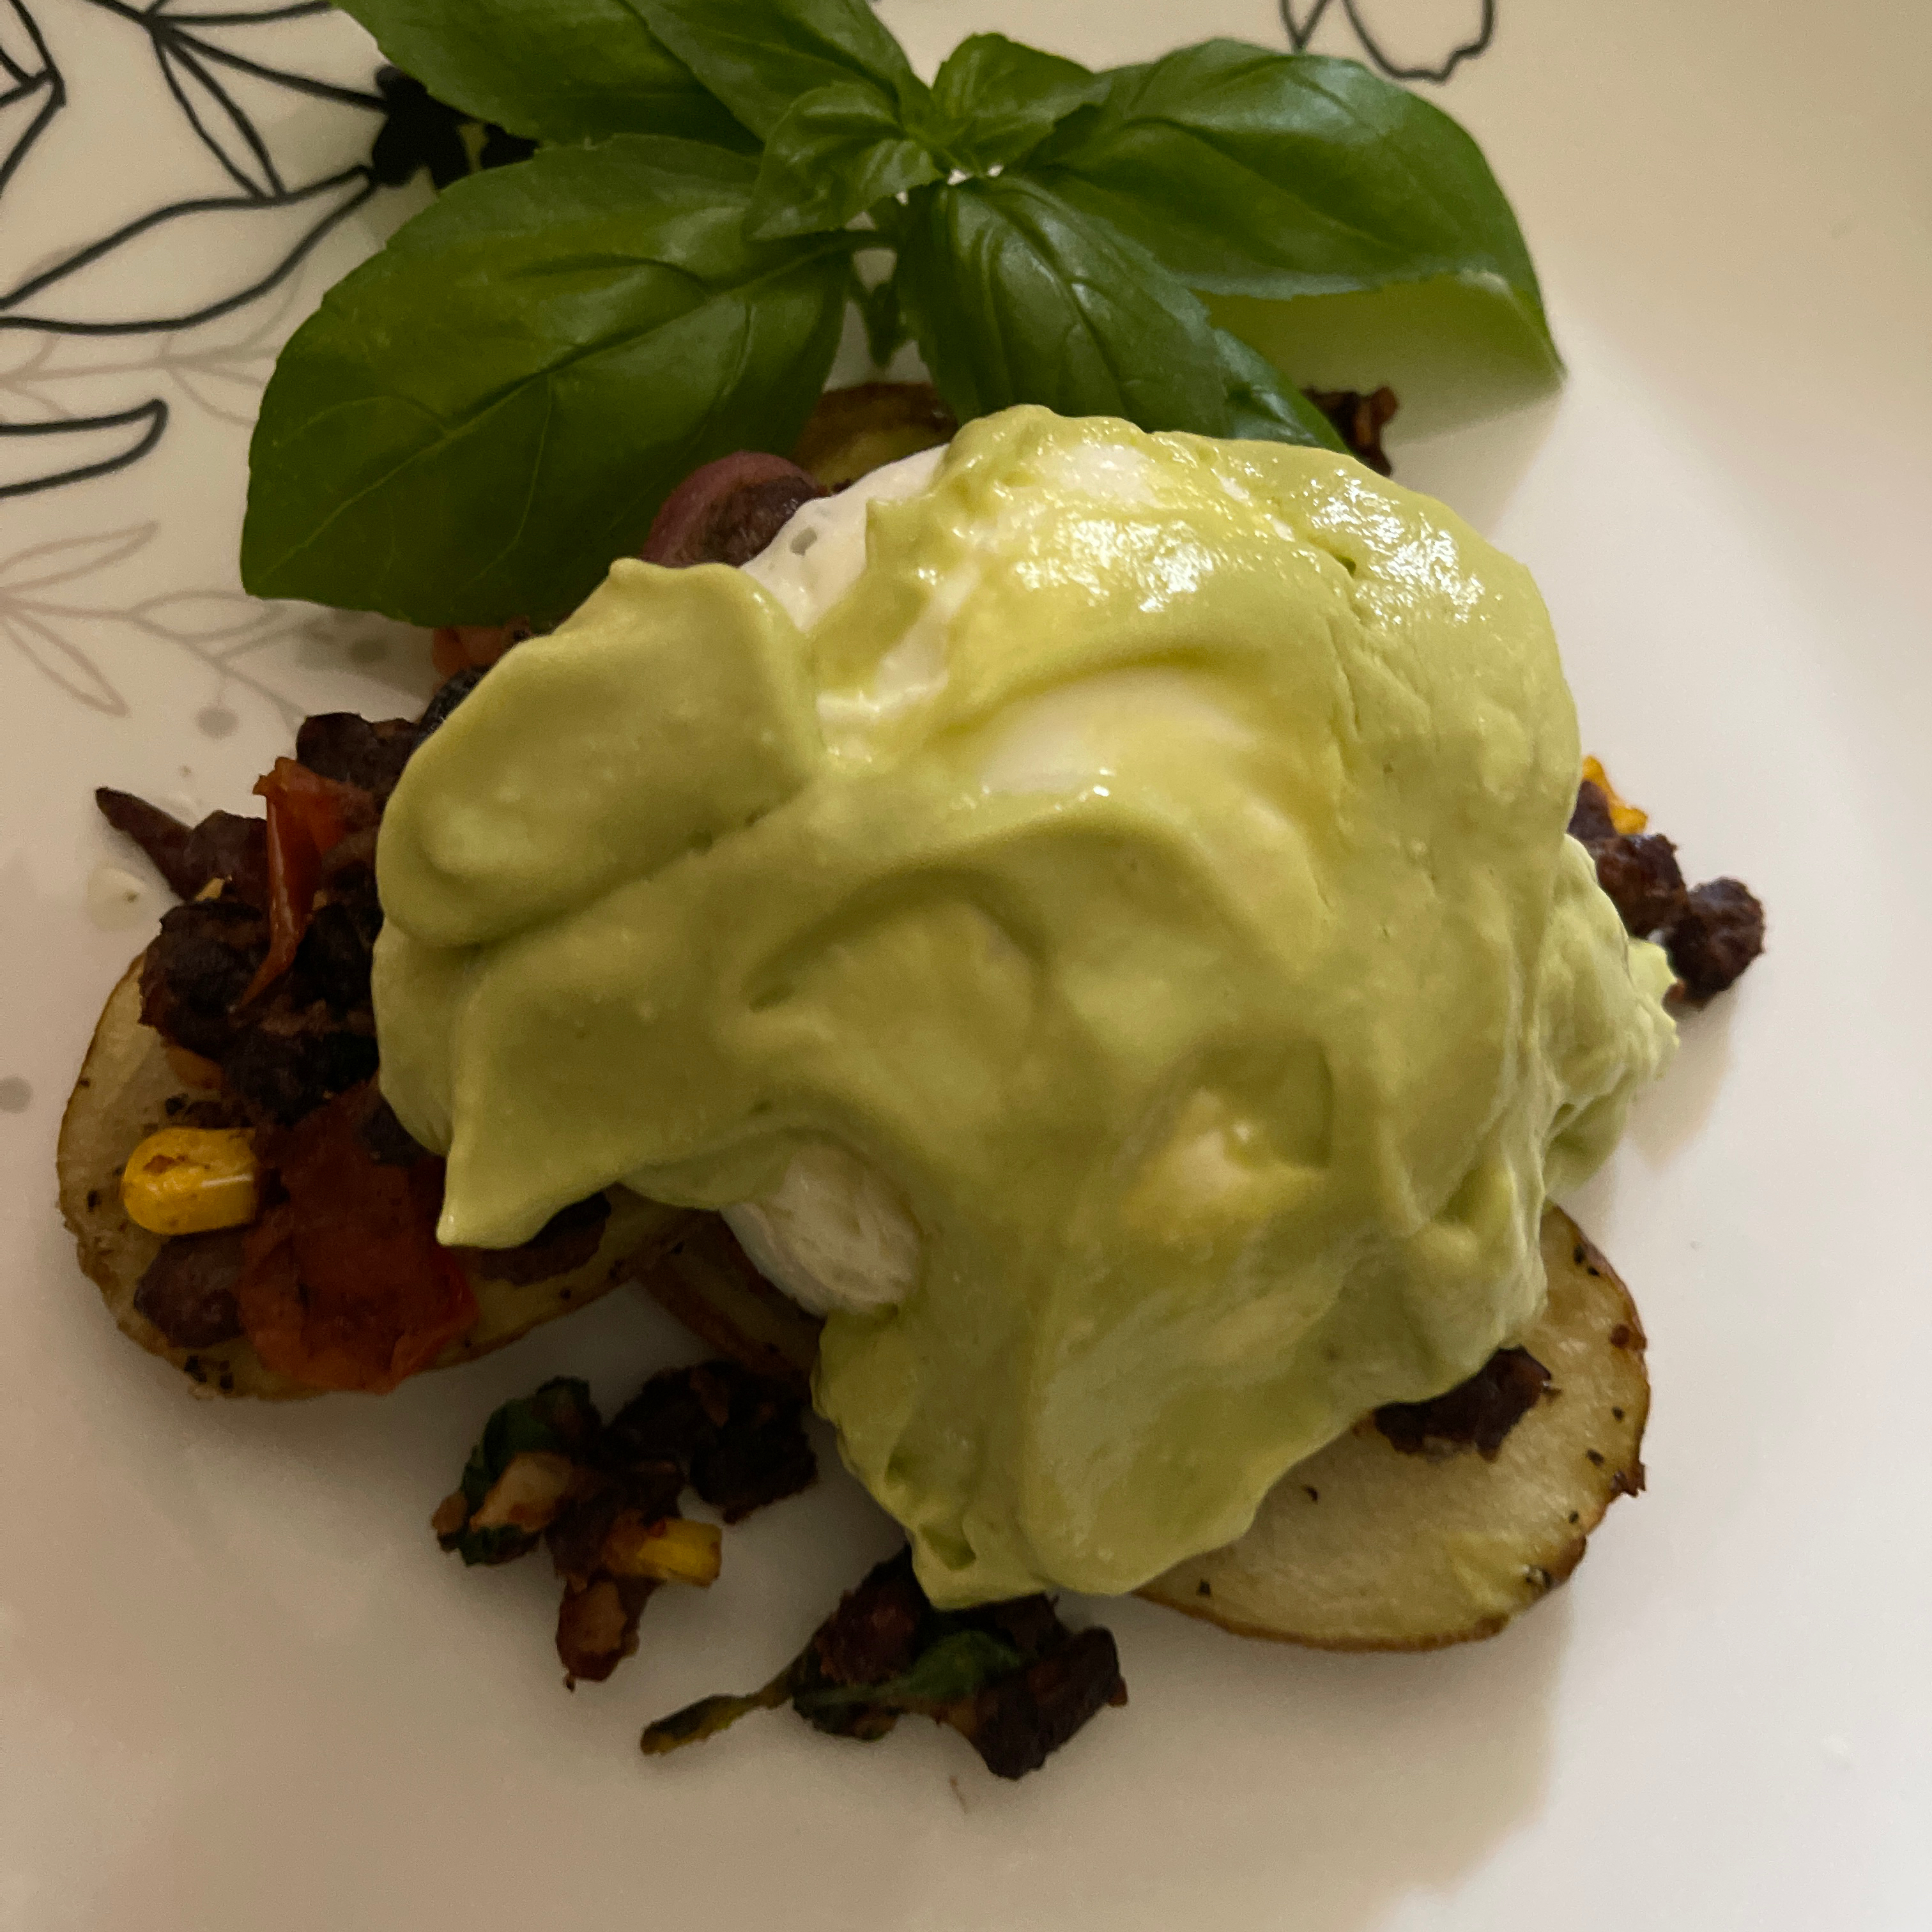 Tex-Mex Eggs Benedict with Grilled Potato Slabs and Avocado-Lime Hollandaise